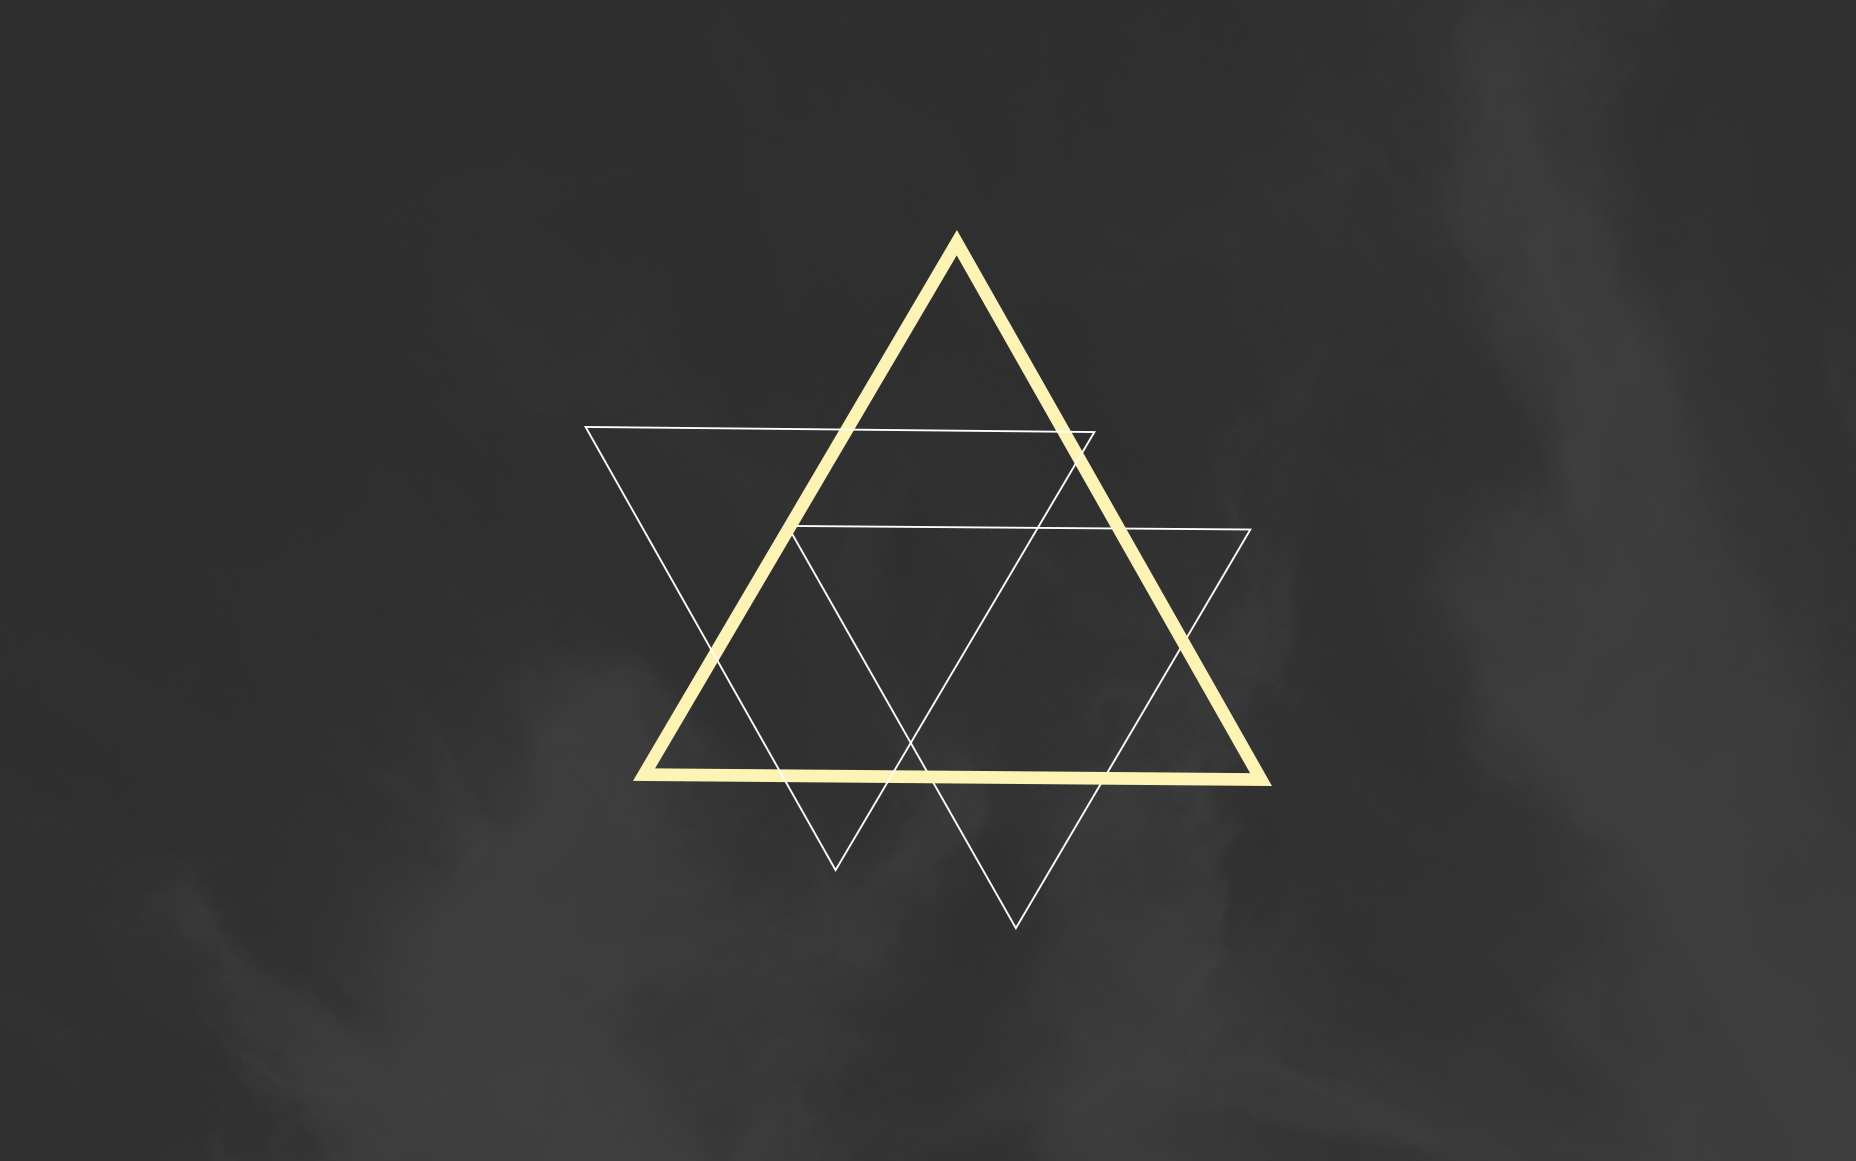 Geometric Minimalist Desktop Wallpapers - Top Free ...